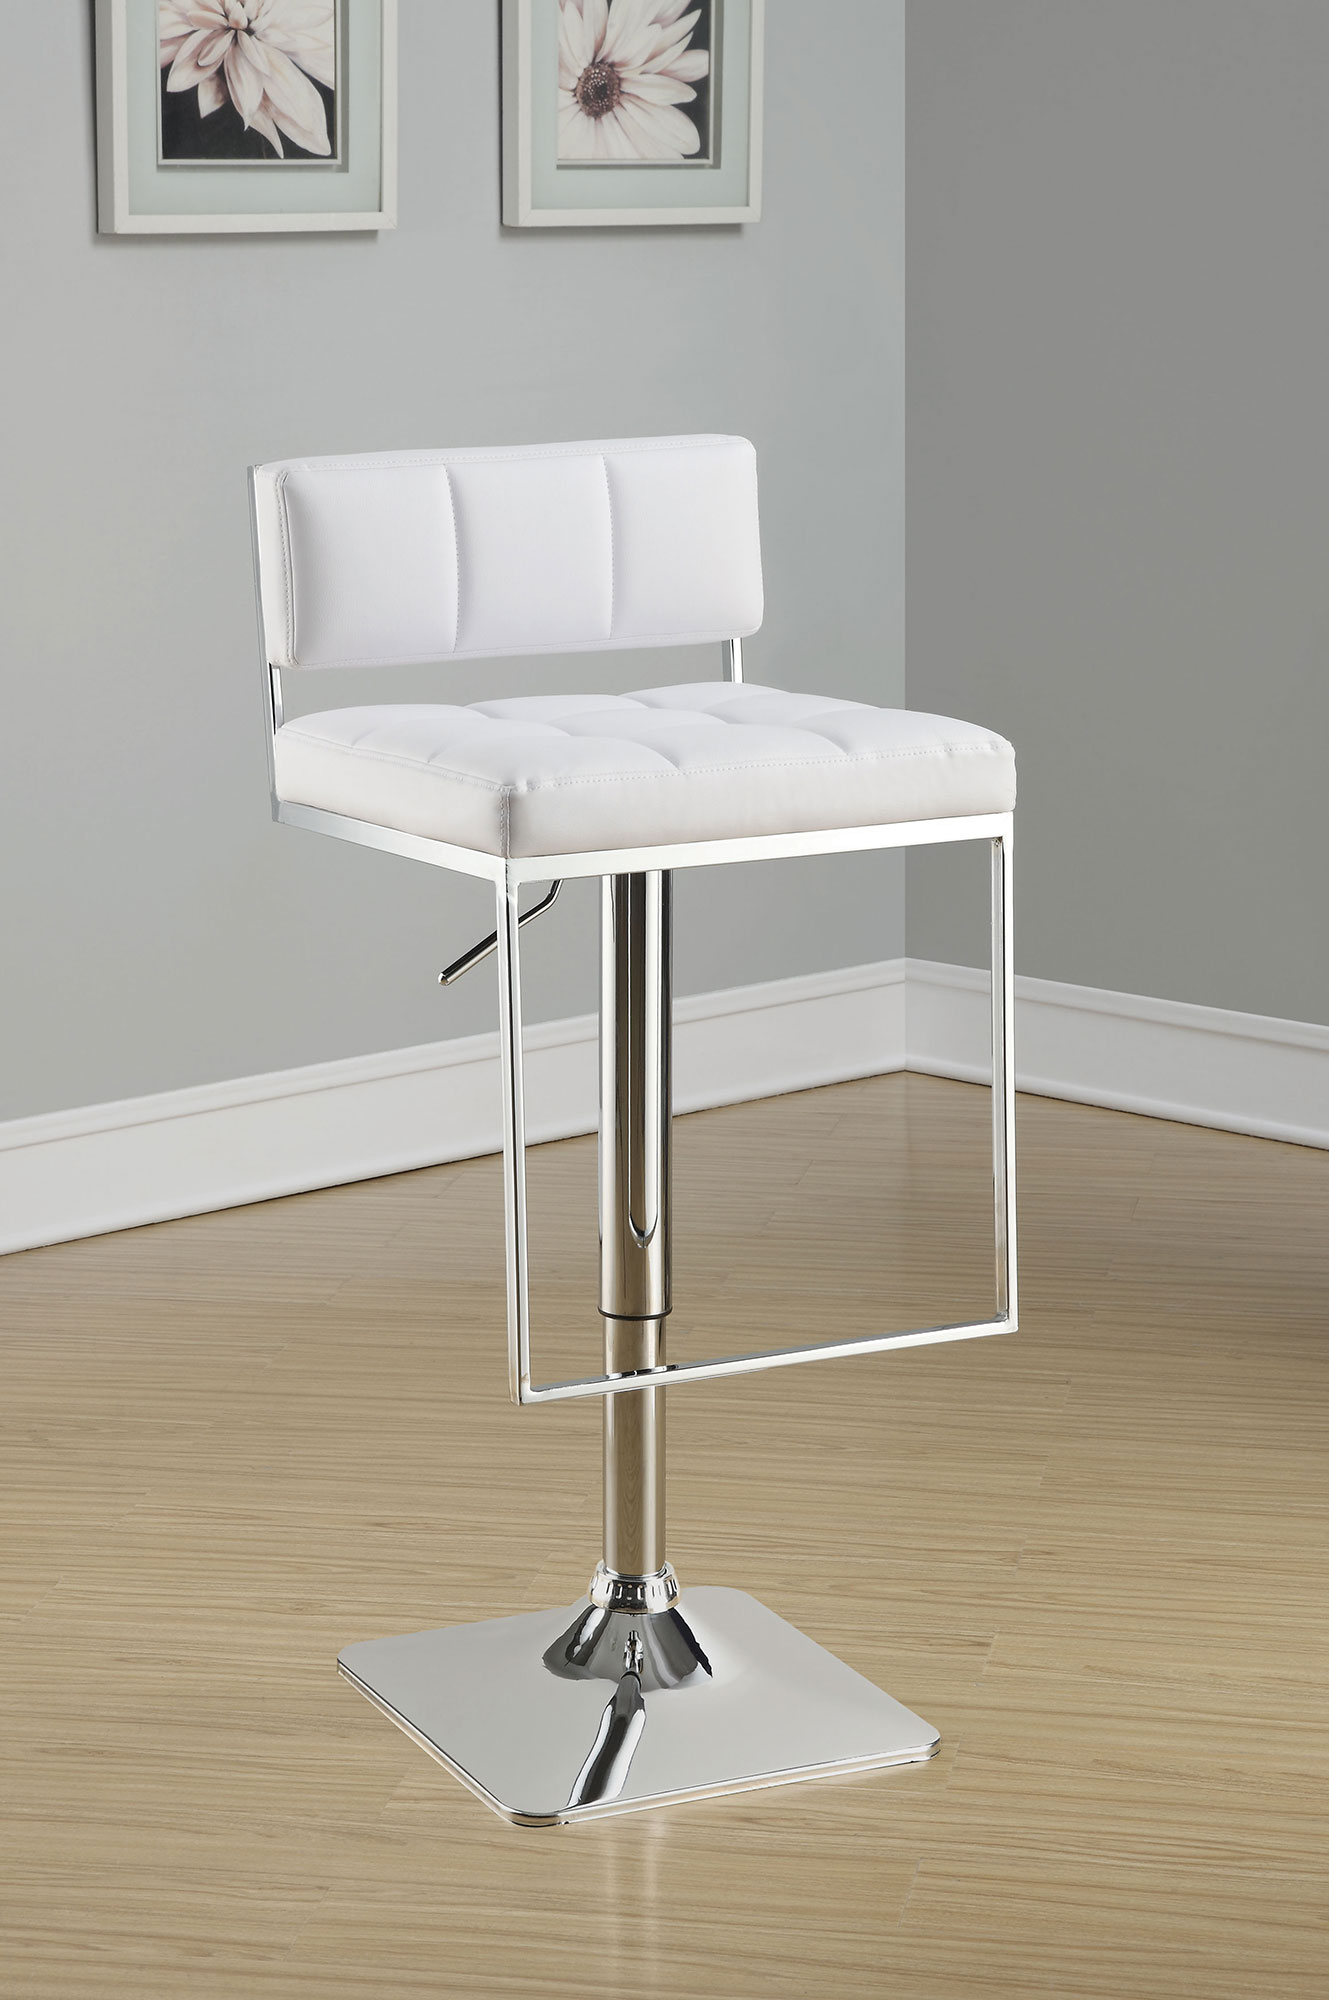 1PerfectChoice Modern Pub Chair Bar Stool Adjustable Ht. White PU Rectangular Back Foot Rest by 1PerfectChoice